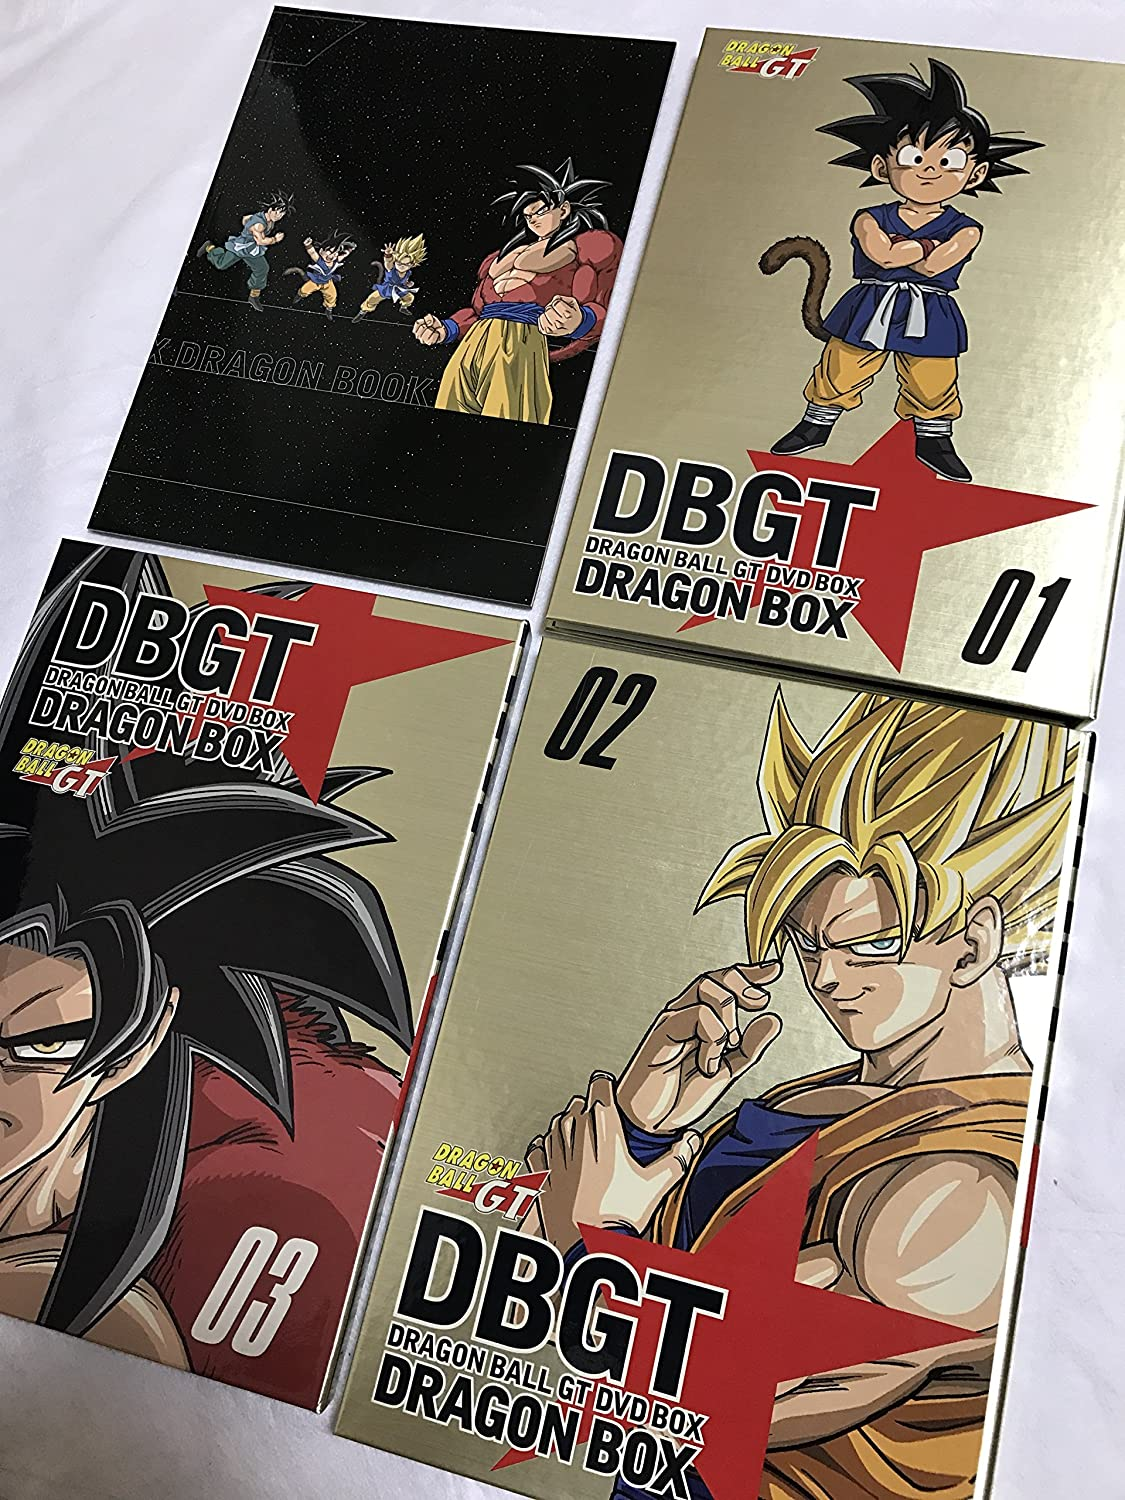 amazon dragon ball dvd box dragon box gt編 アニメ